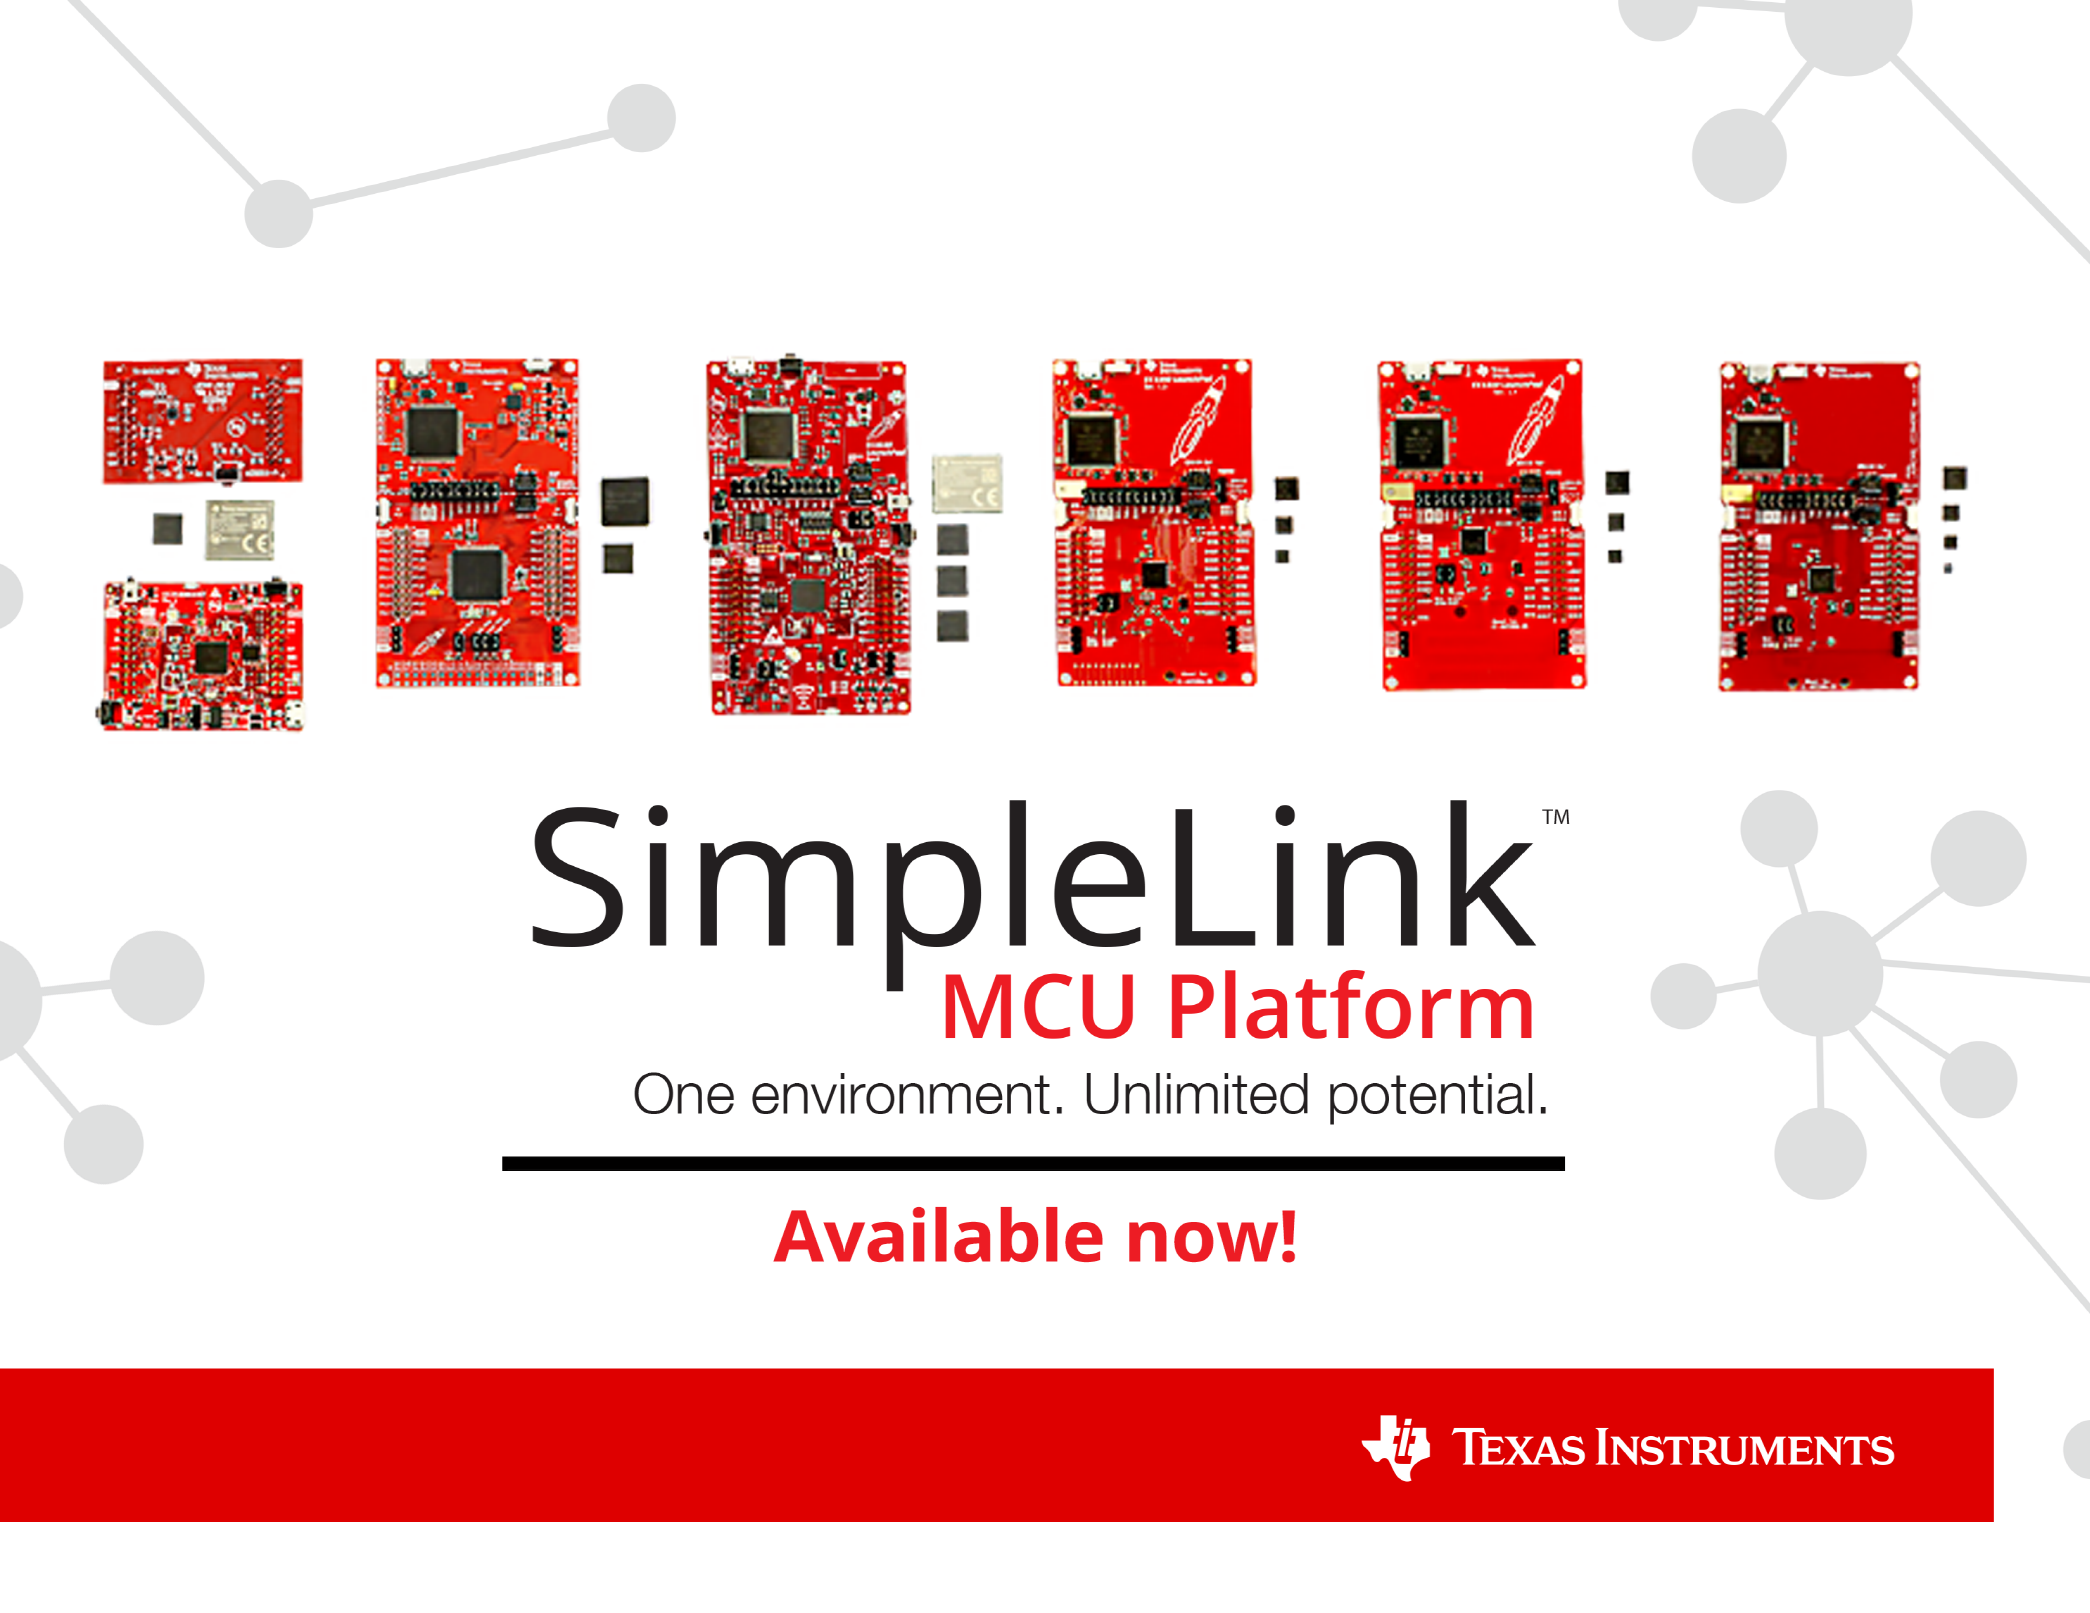 TI's new SimpleLink platform transforms development with 100 percent